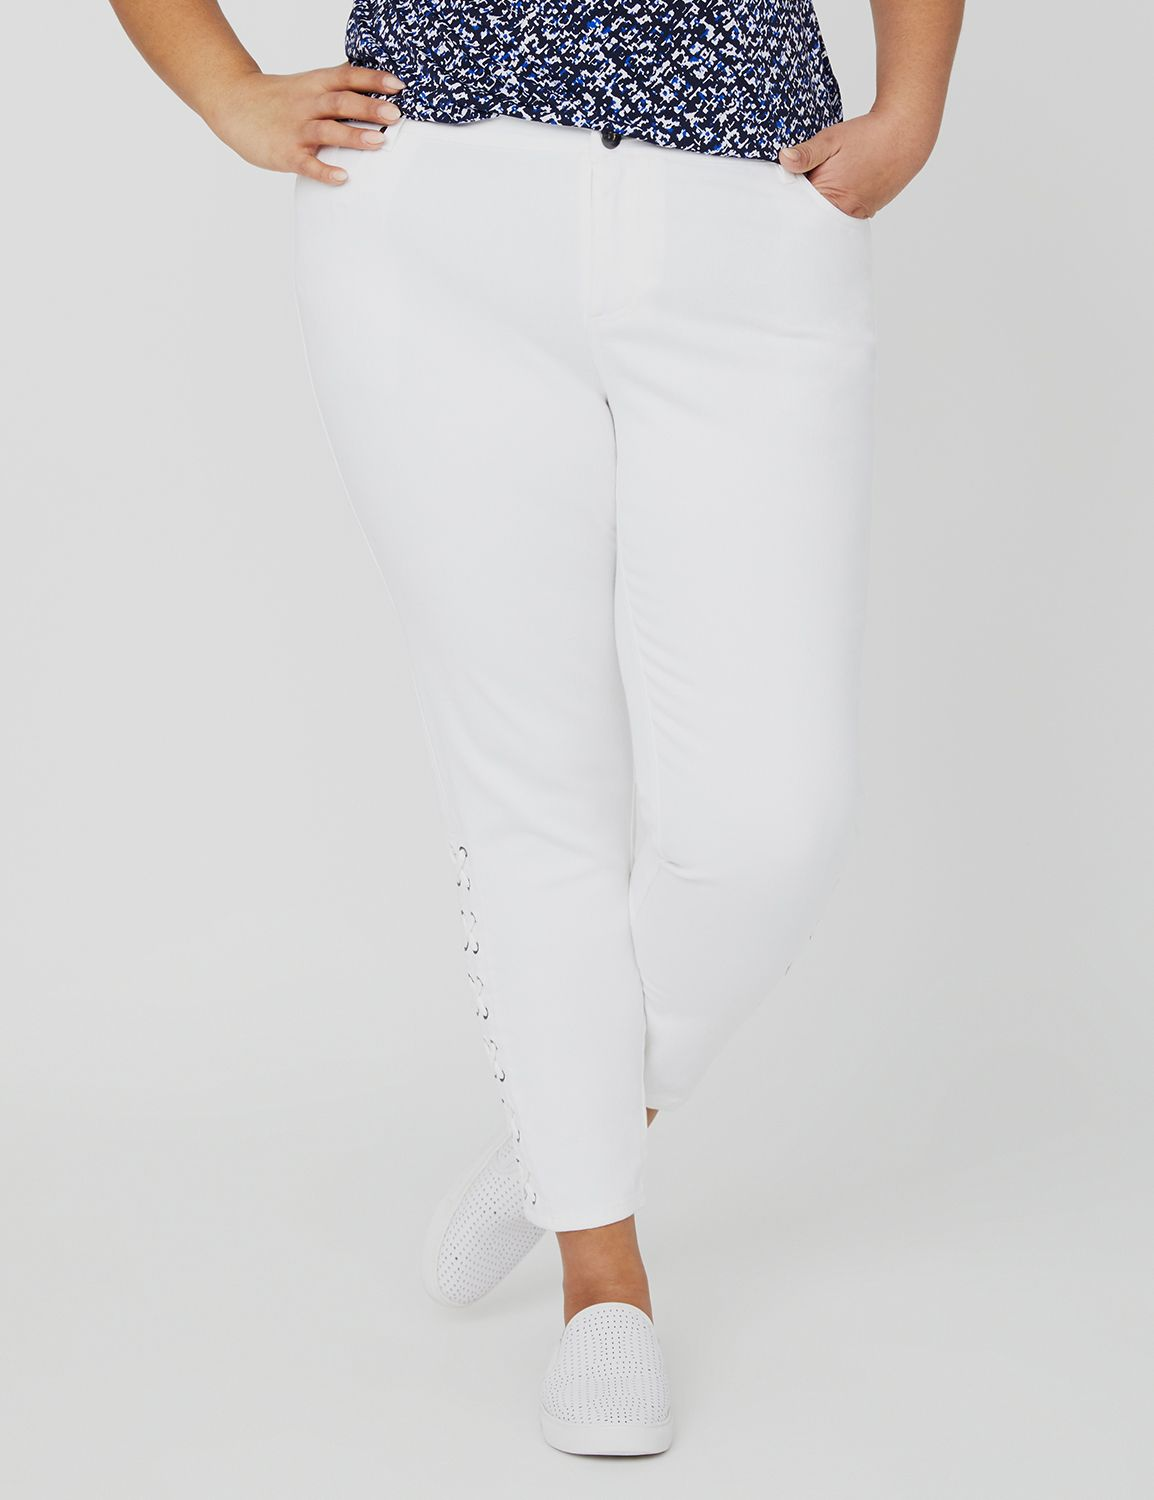 Curvy Collection Lace-Up White Jean 1091485 Curvy Collection Sateen Whi MP-300098783